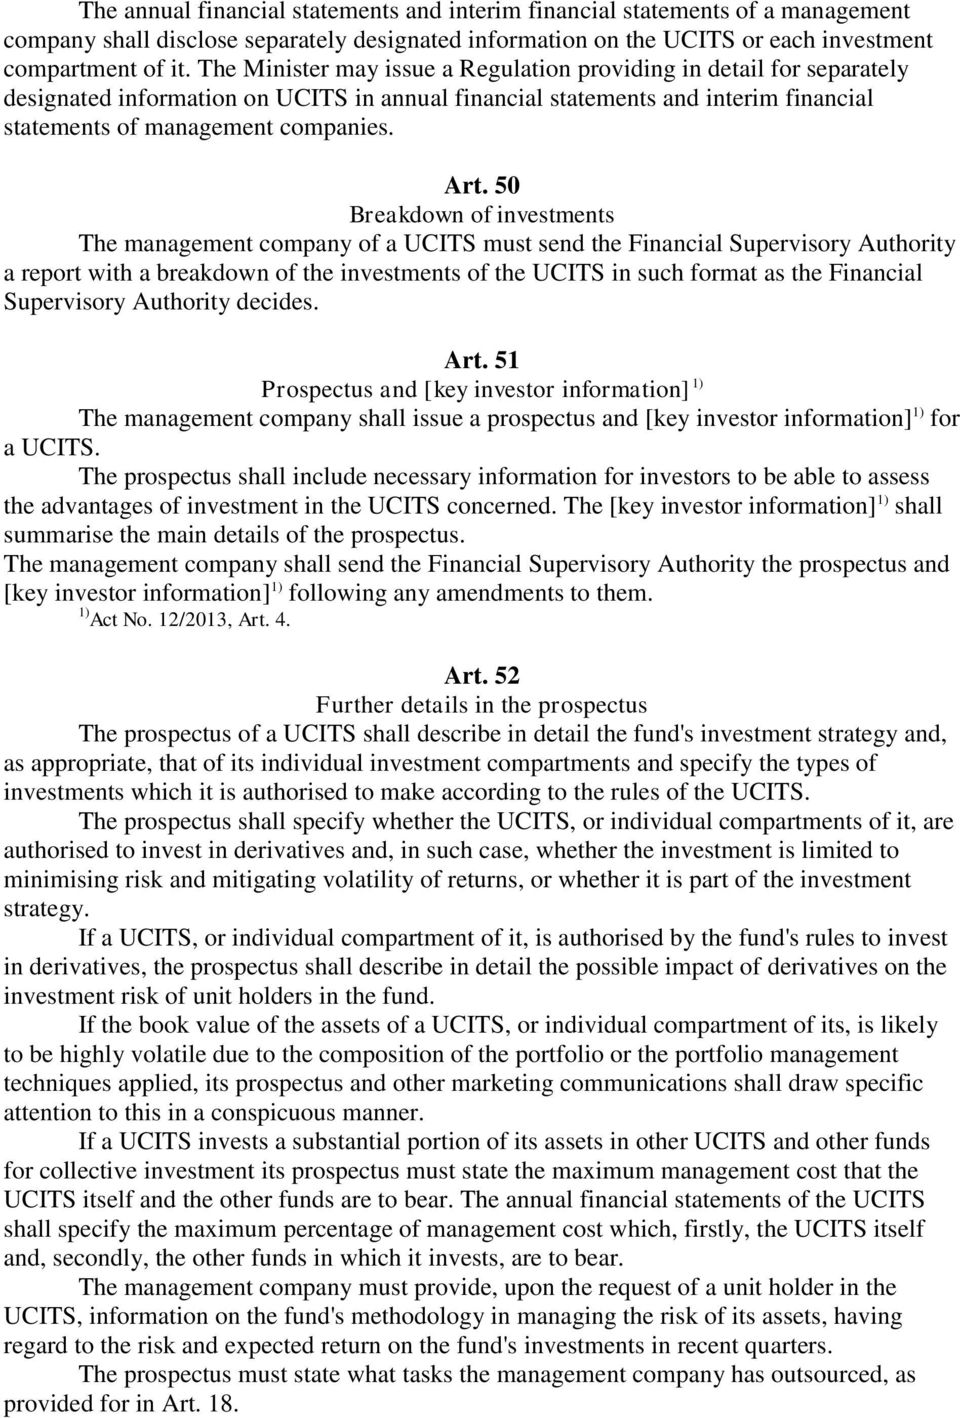 50 Breakdown of investments The management company of a UCITS must send the Financial Supervisory Authority a report with a breakdown of the investments of the UCITS in such format as the Financial